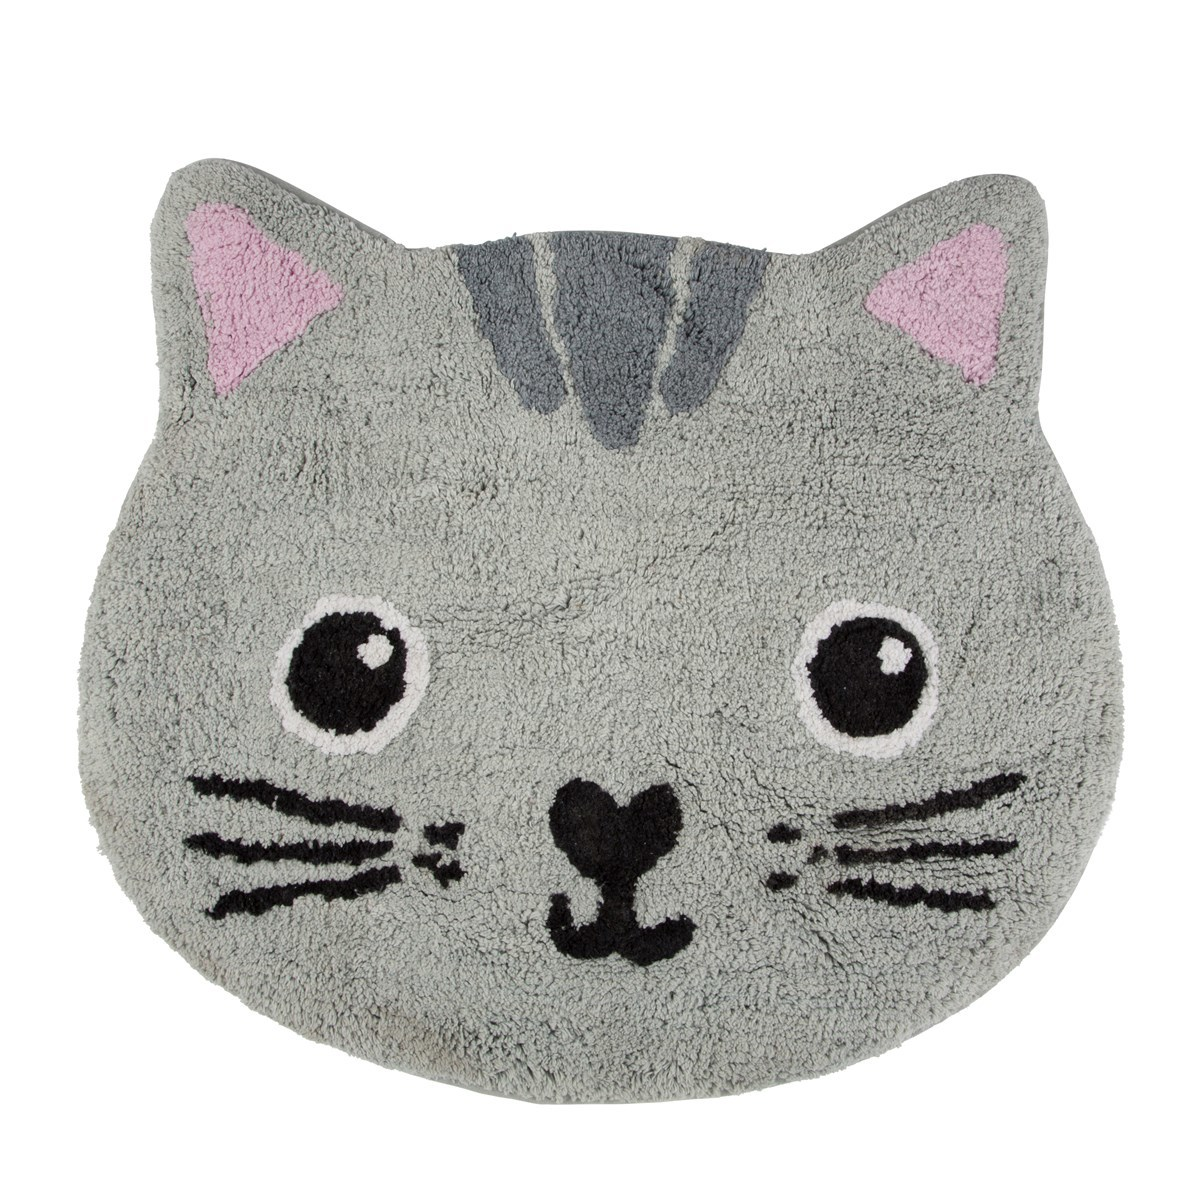 Nori Cat Kawaii Friends Rug image